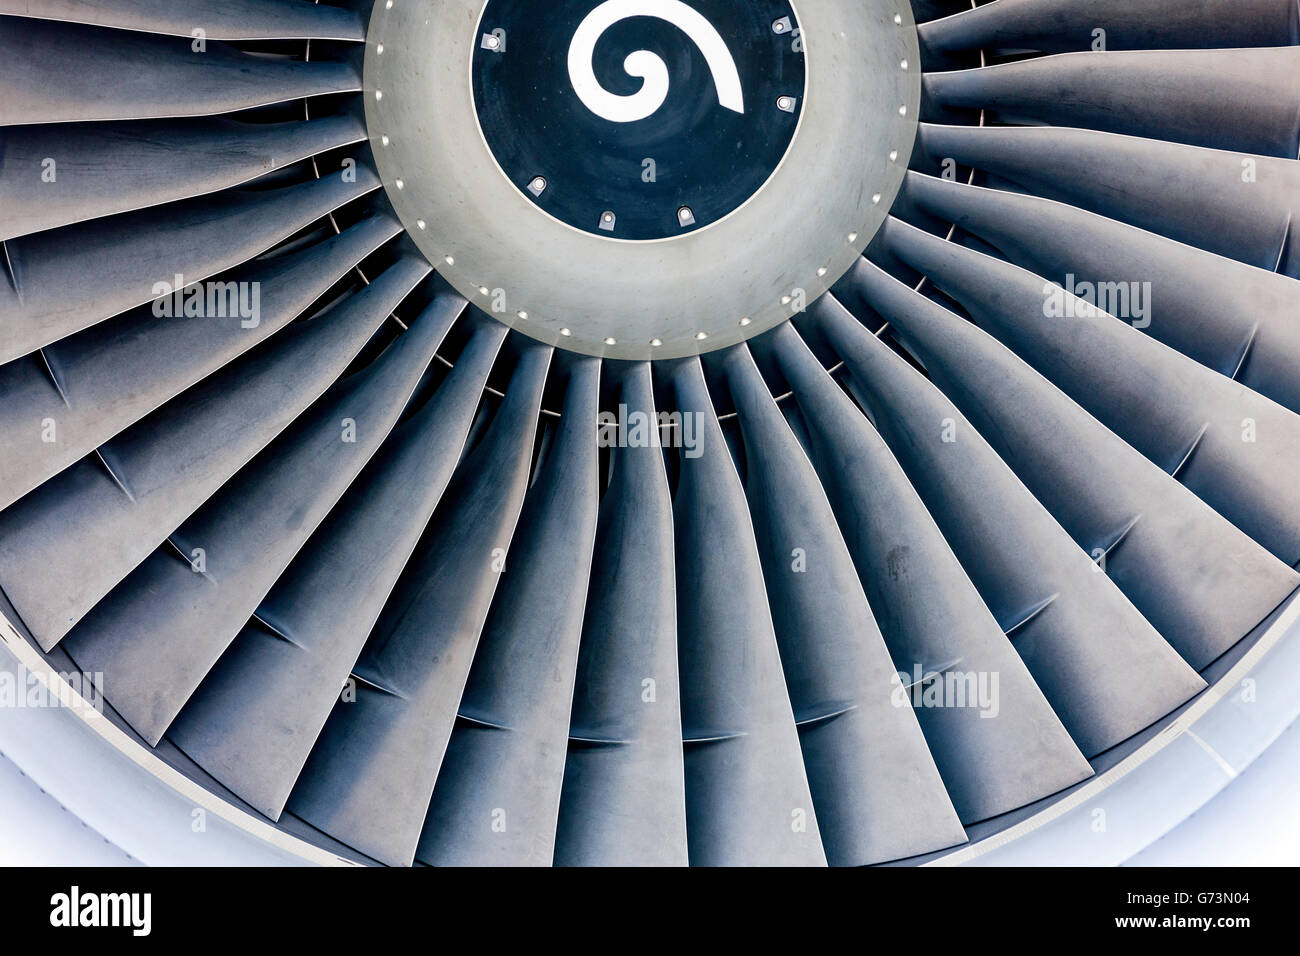 Jet Engine - Stock Image